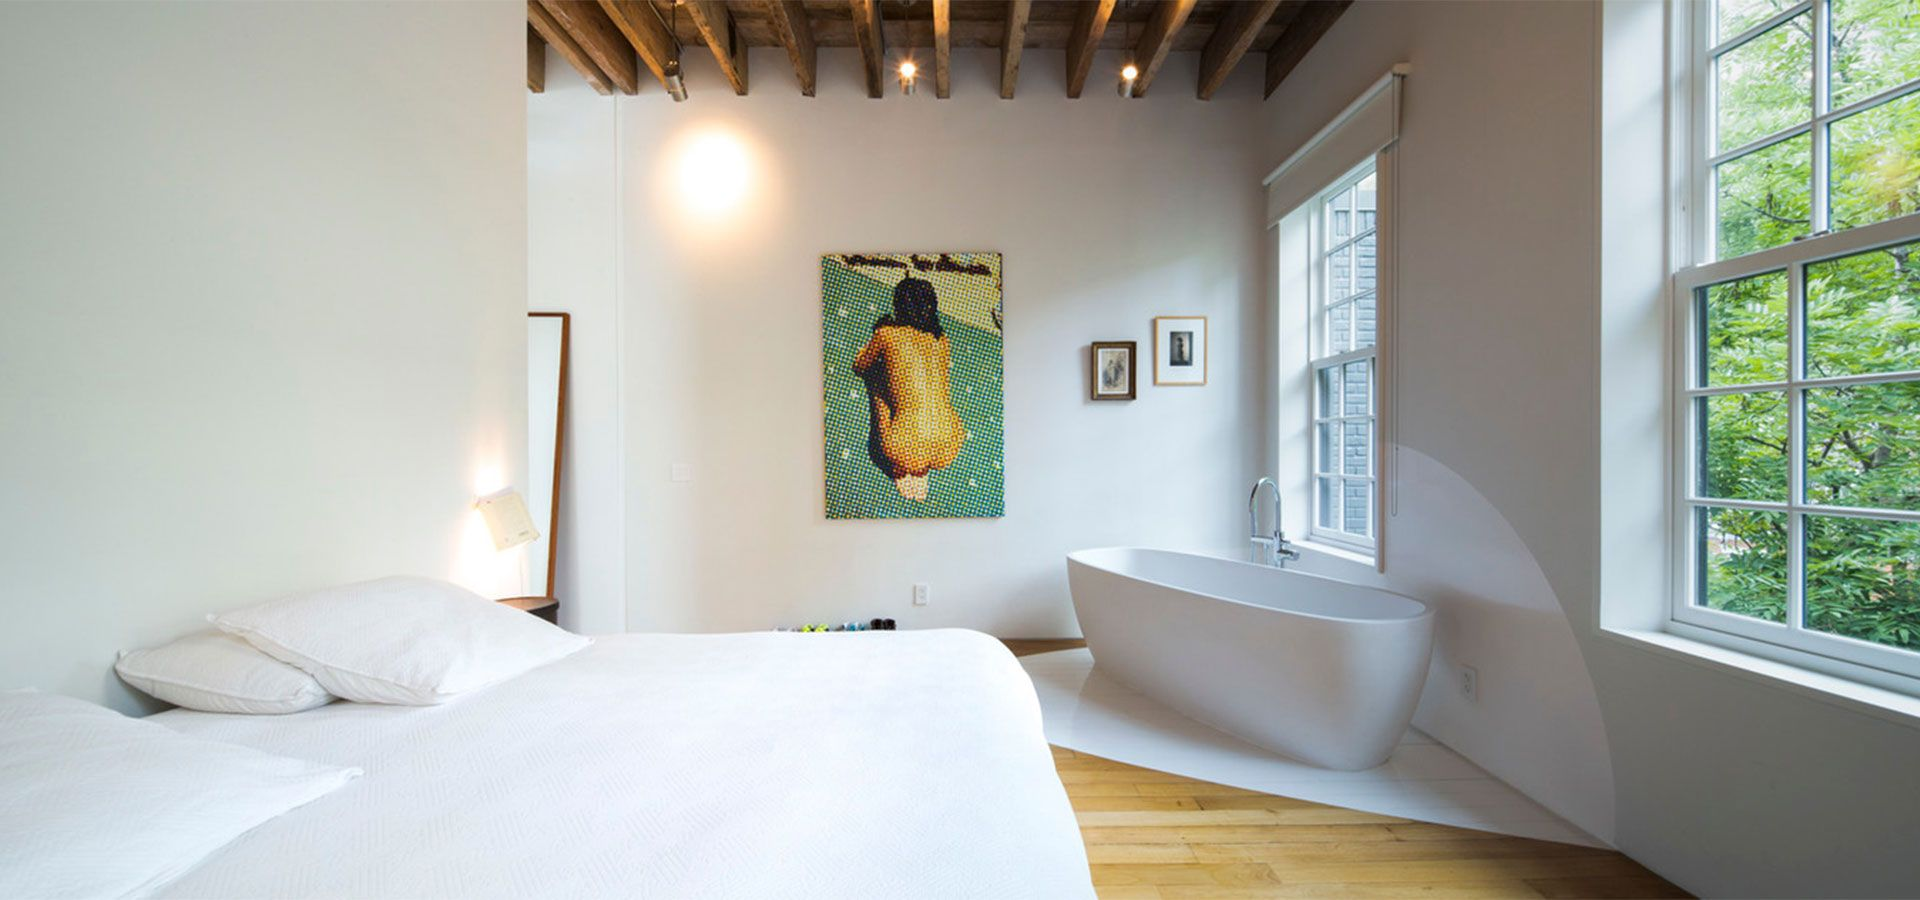 Awesome Houzz Salle De Bain Gallery